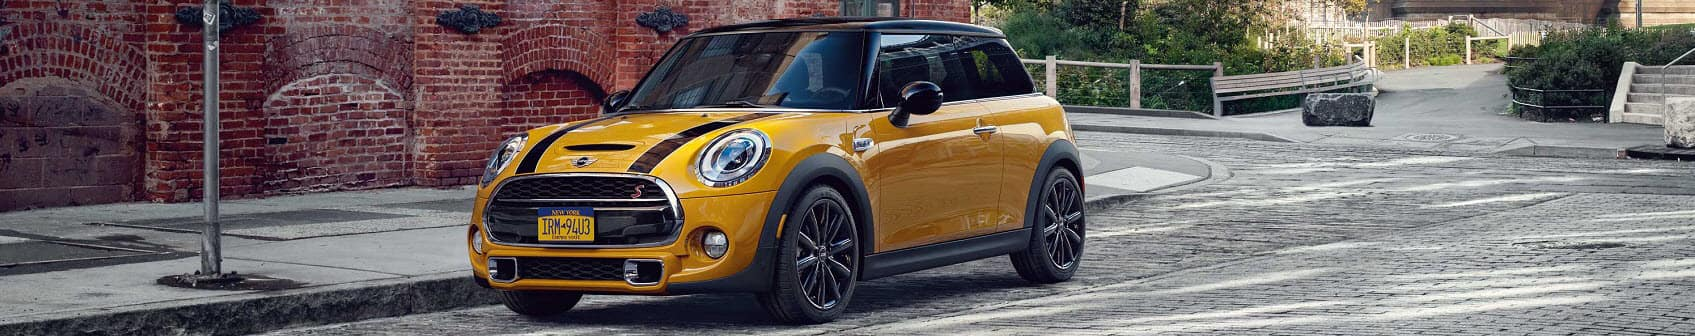 2019 Mini Cooper Hard Top